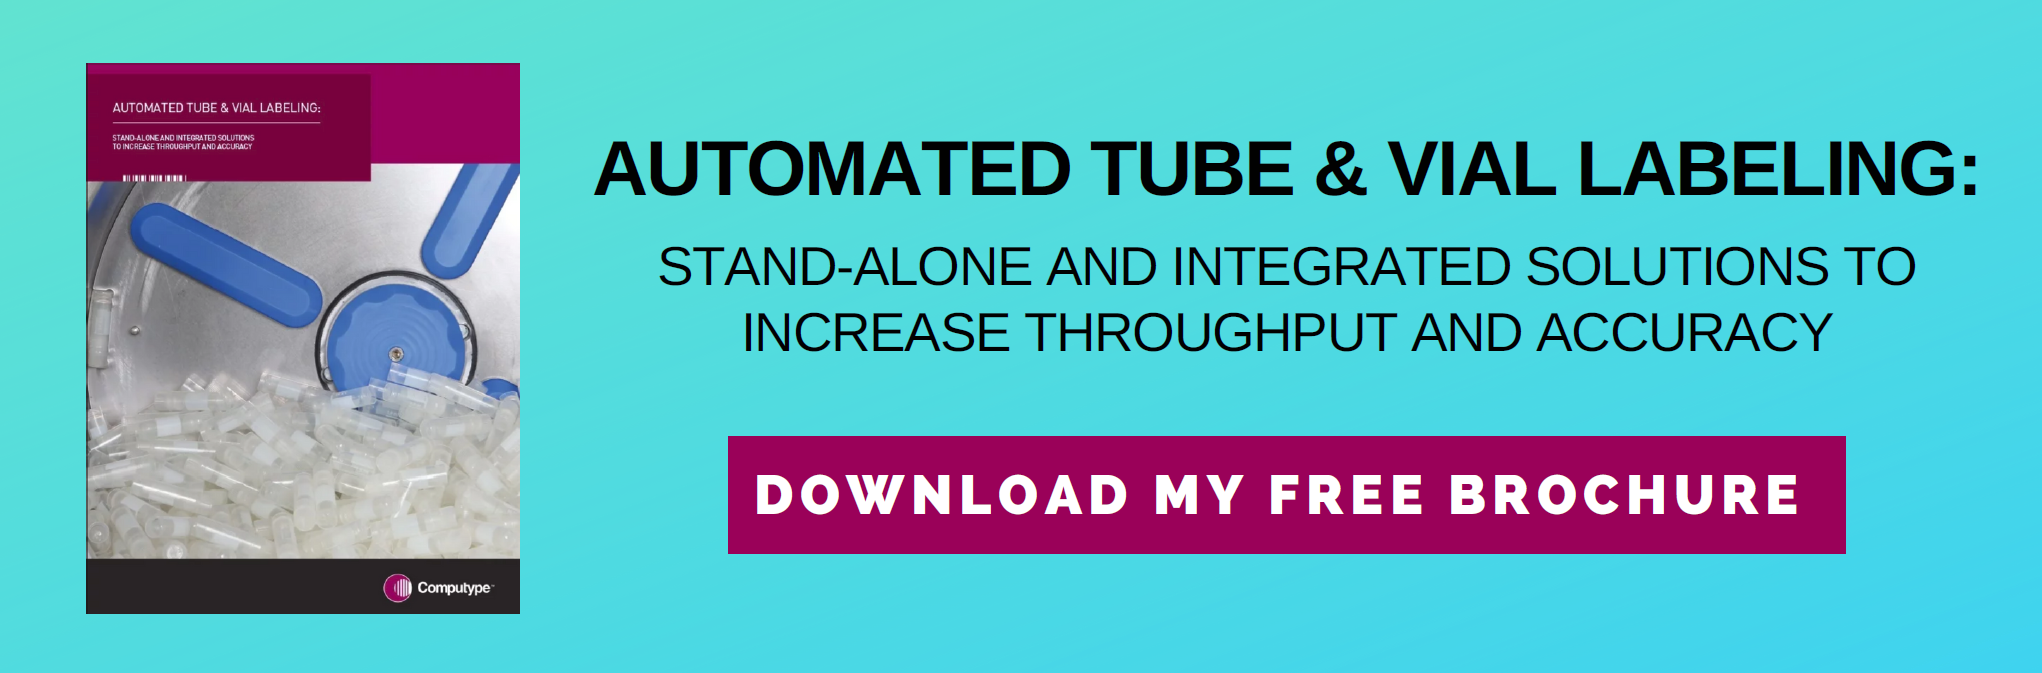 Automated tube & vial labeling: stand-alone and integrated solutions to increase throughput and accuracy. Download my free brochure